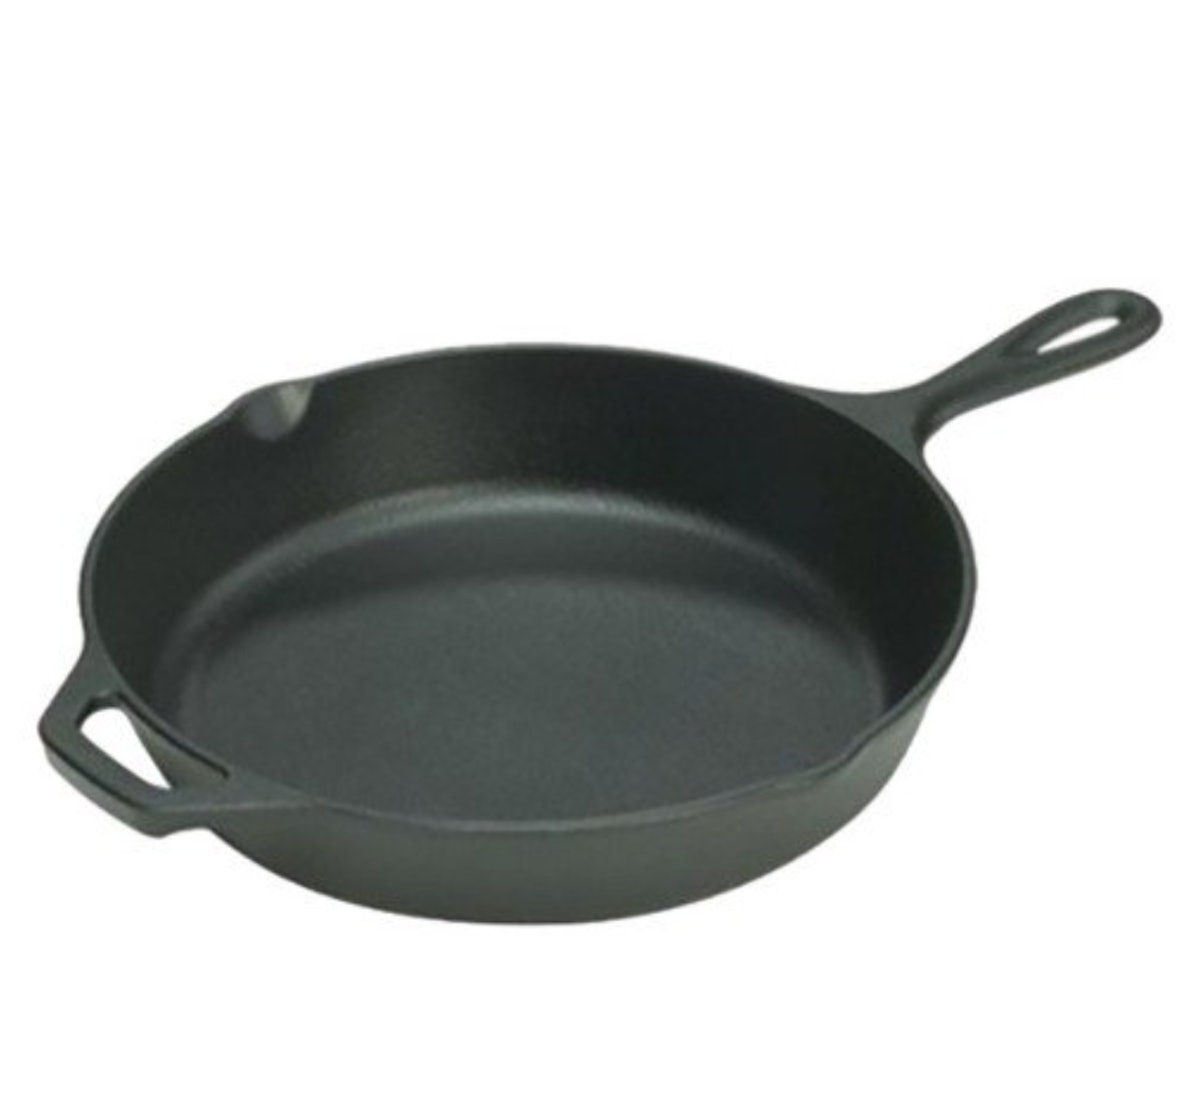 Lodge Pre-Seasoned 10.25 Inch Cast Iron Skillet with Assist Handle